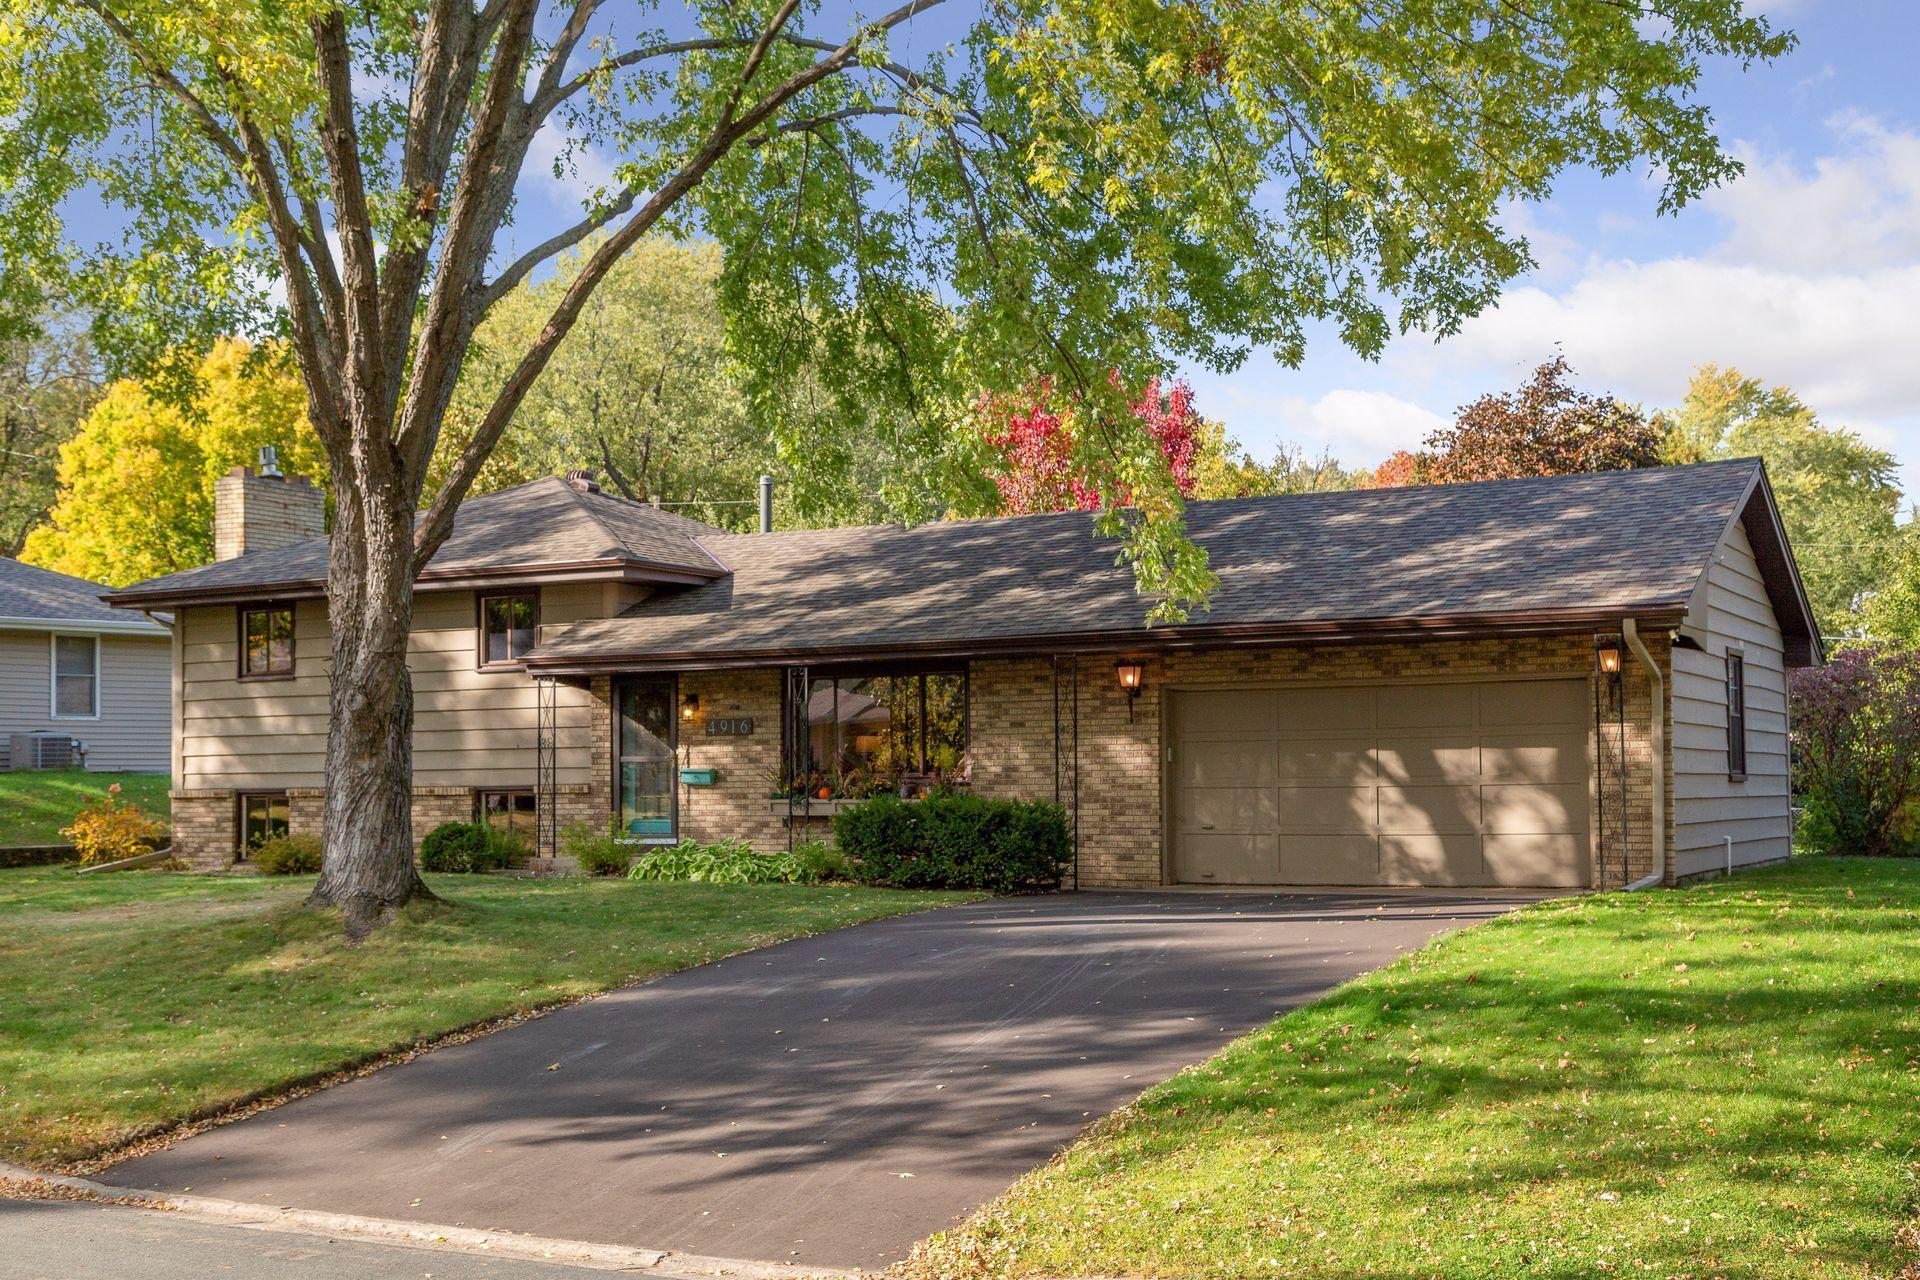 4916 W 86th Street Property Photo - Bloomington, MN real estate listing